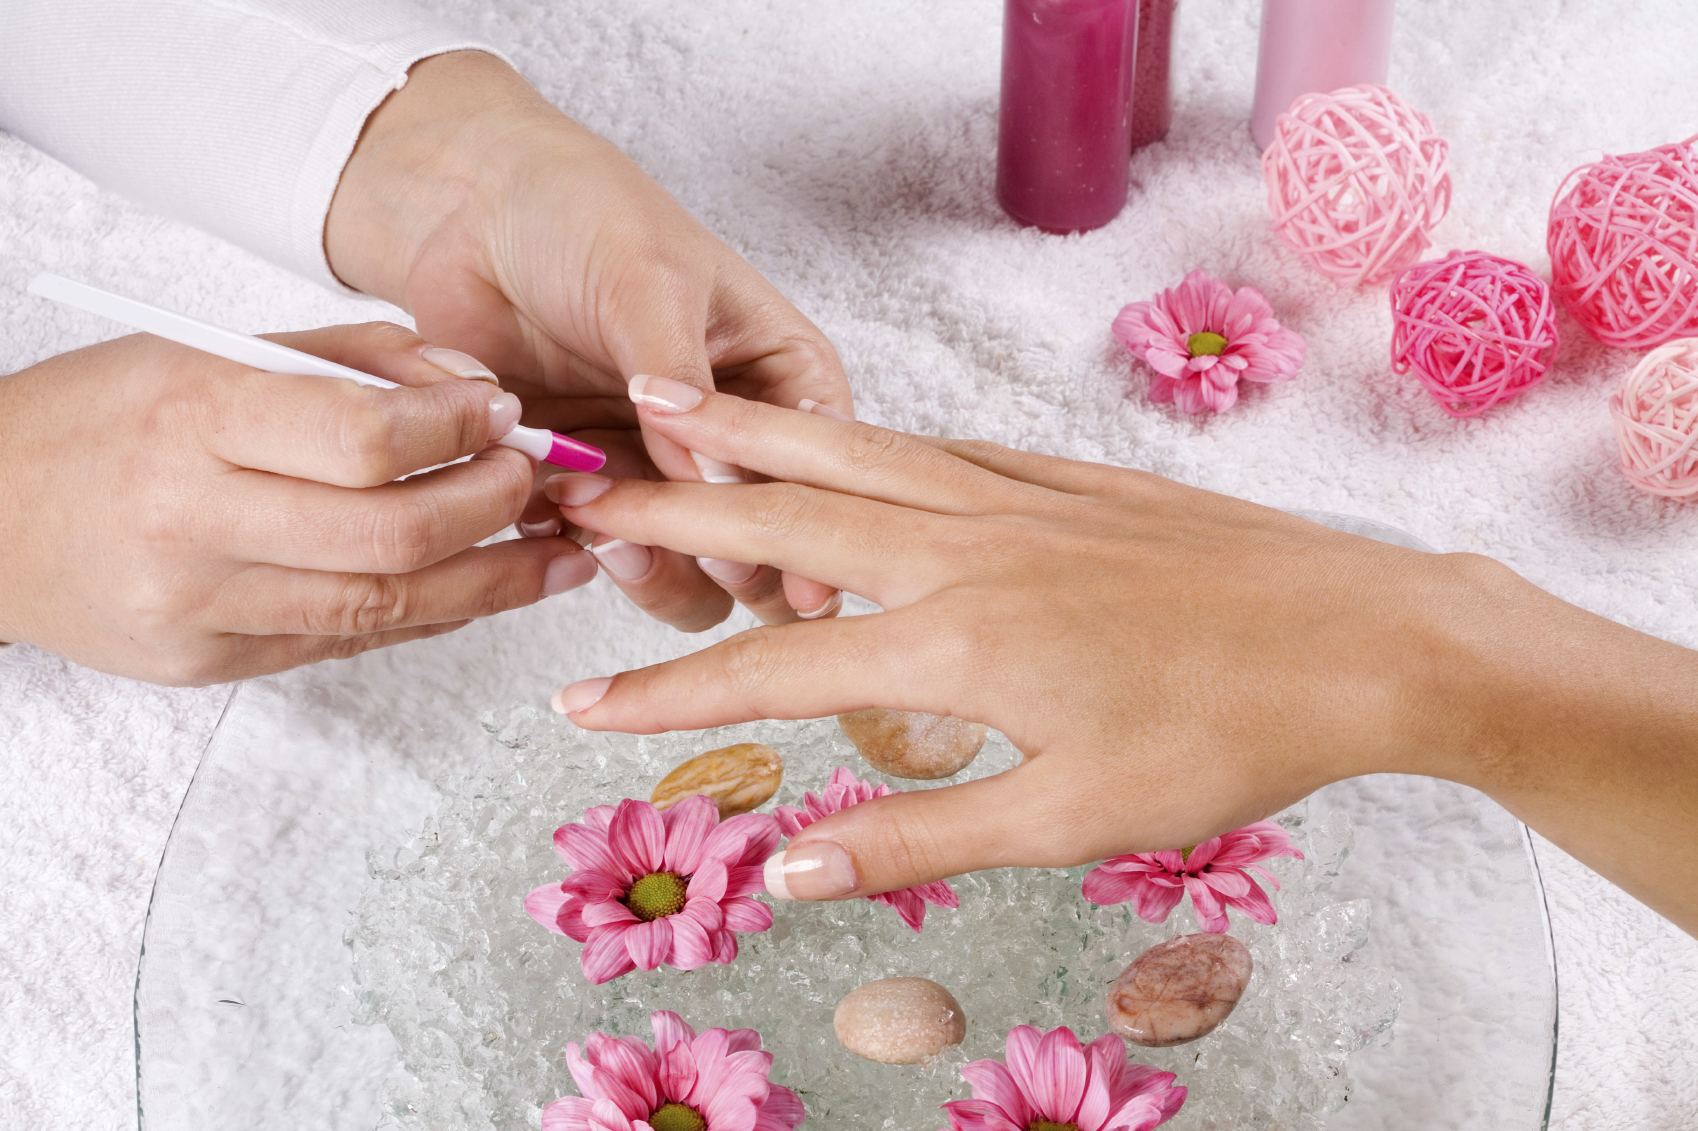 14-Day Chip Free Manicure With Revolutionary Product Offered at Adora ...